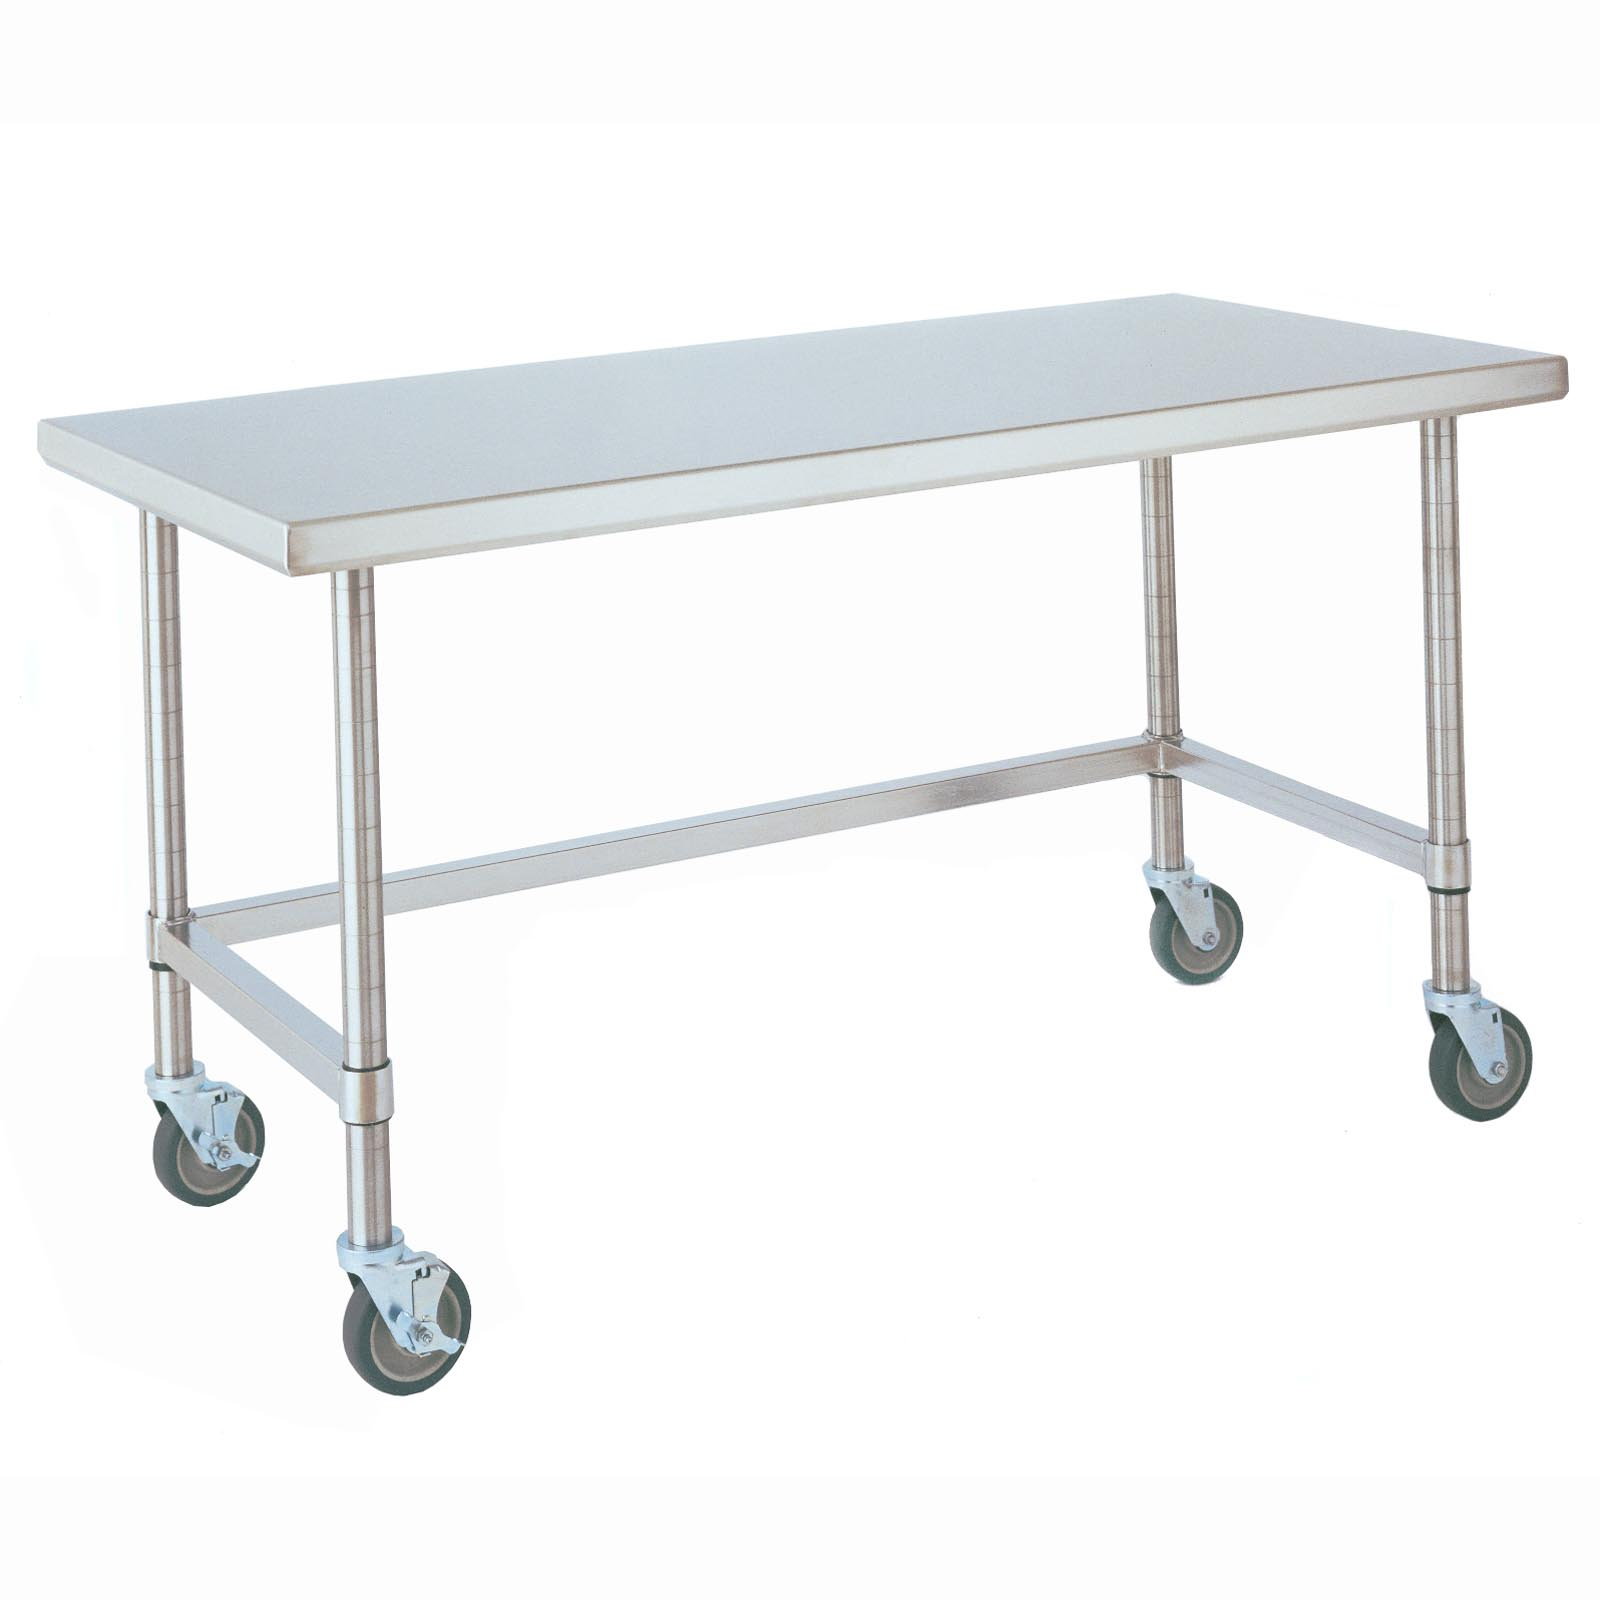 all stainless steel portable kitchen work table serving